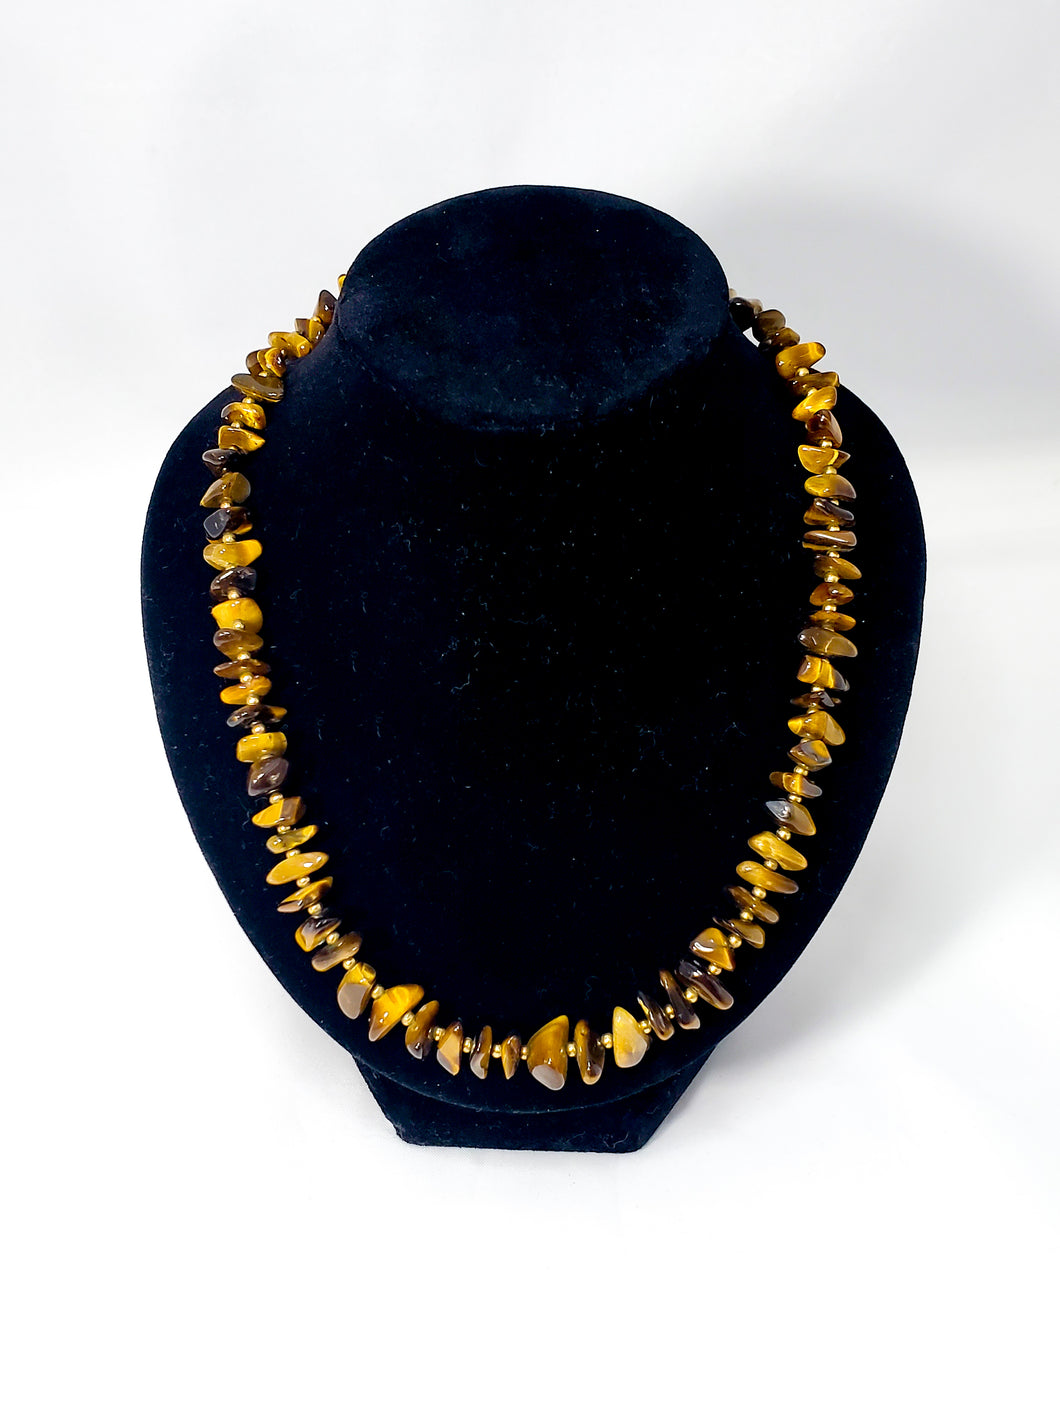 Flashy striated Tiger's Eye gemstone chip necklace with gold filled accents 16 inches